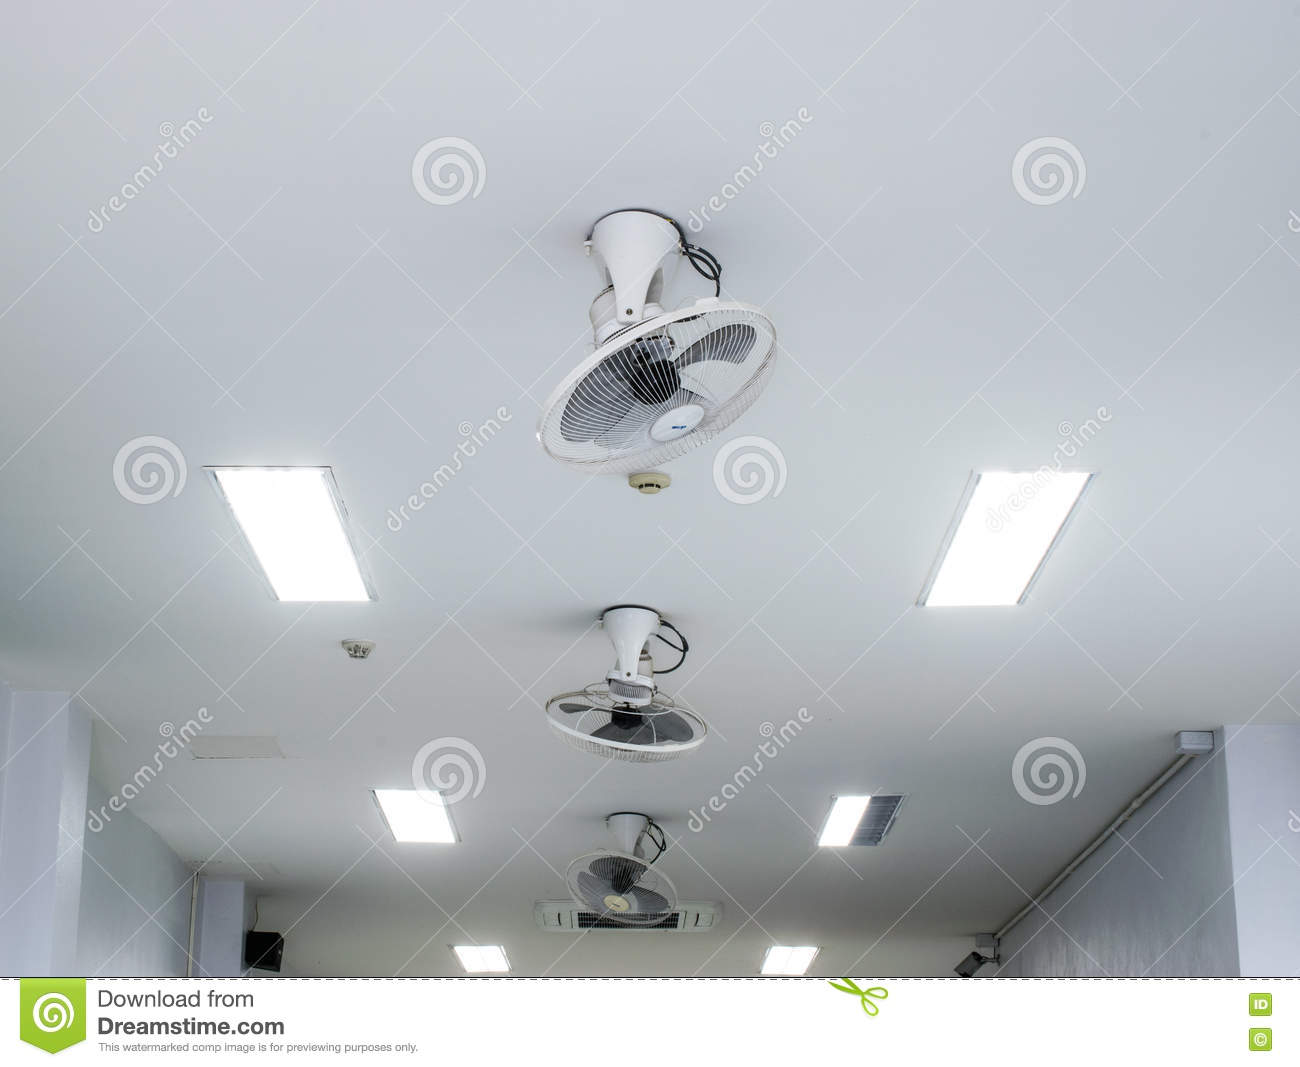 Ceiling fan on white office ceiling stock image image 72681277 ceiling fan on white office ceiling mozeypictures